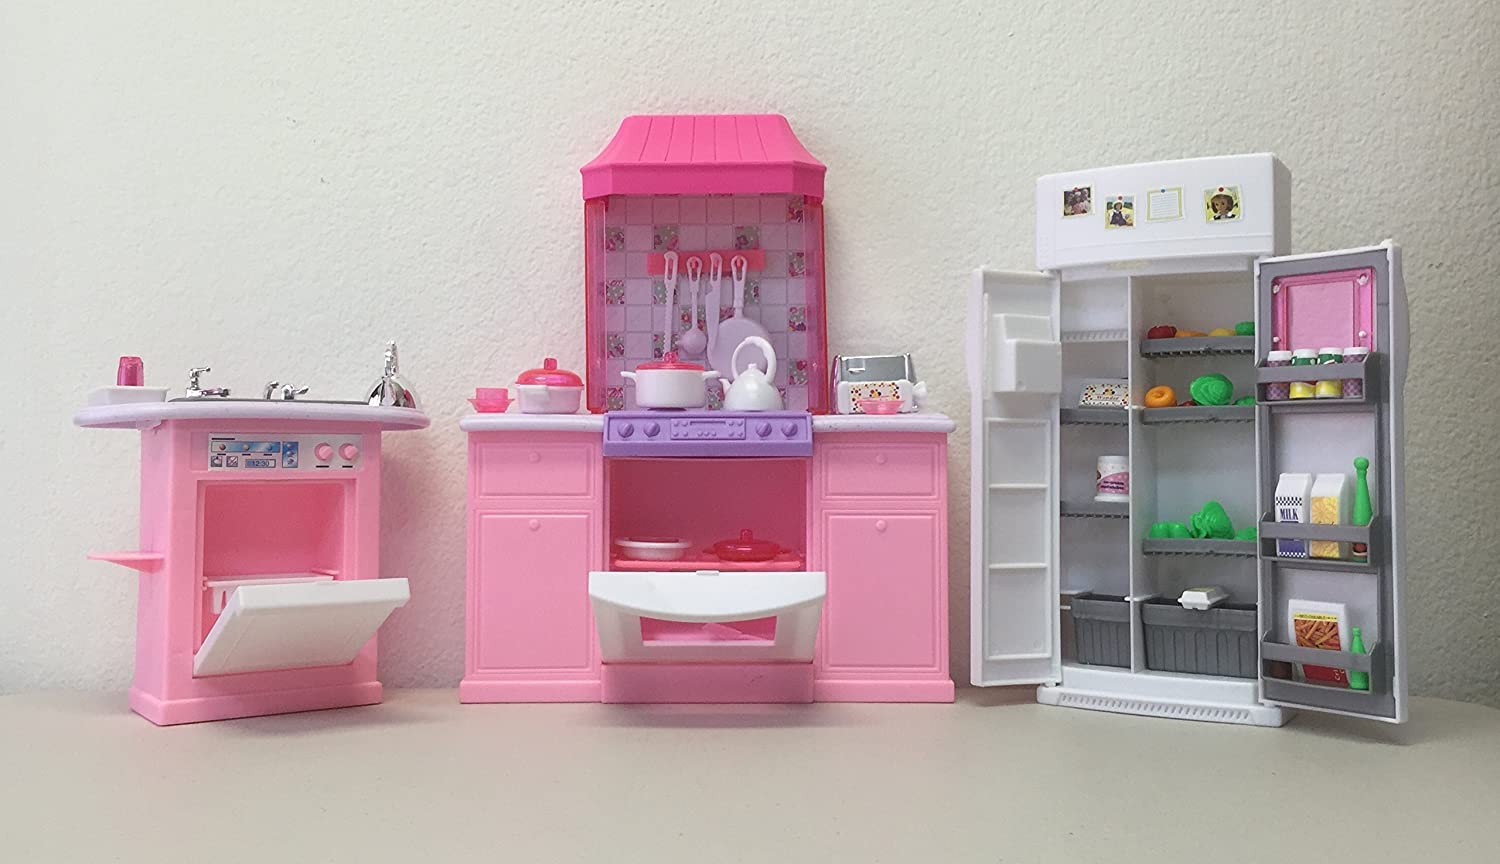 amazoncom barbie size dollhouse furniture kitchen set toys games barbie doll house furniture sets